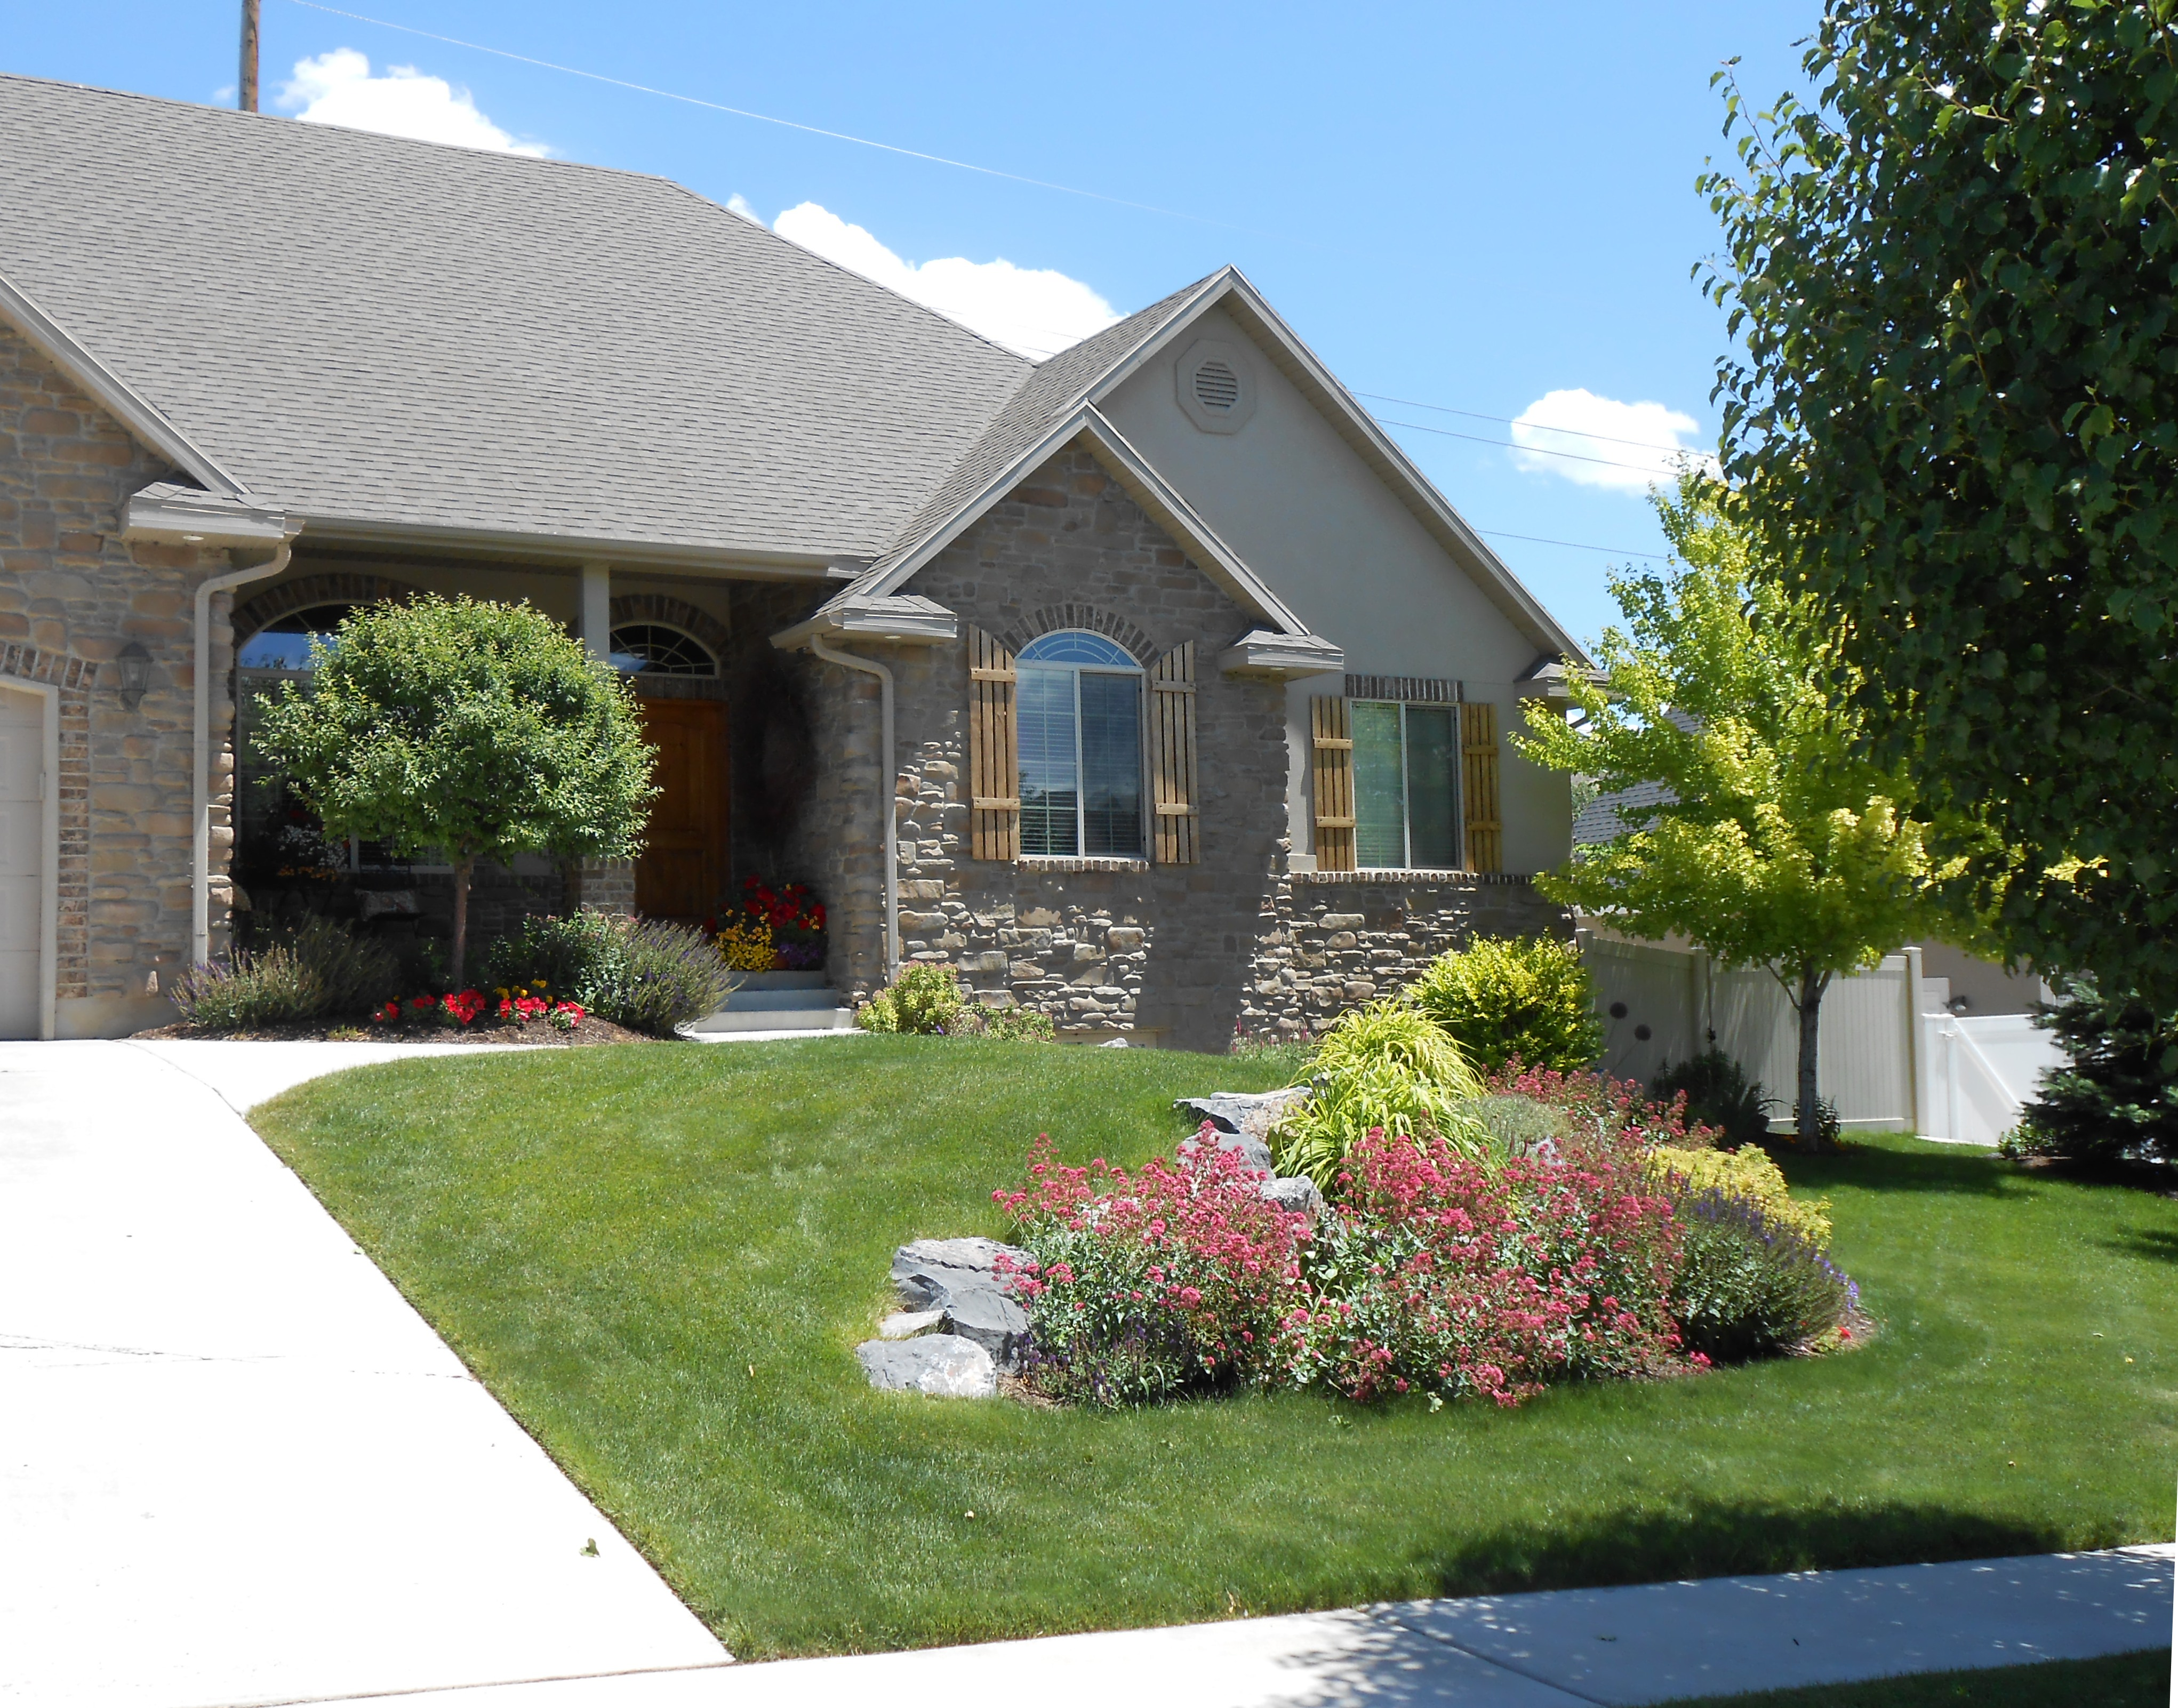 The Kofford Family - Yard of the Month - June 2013